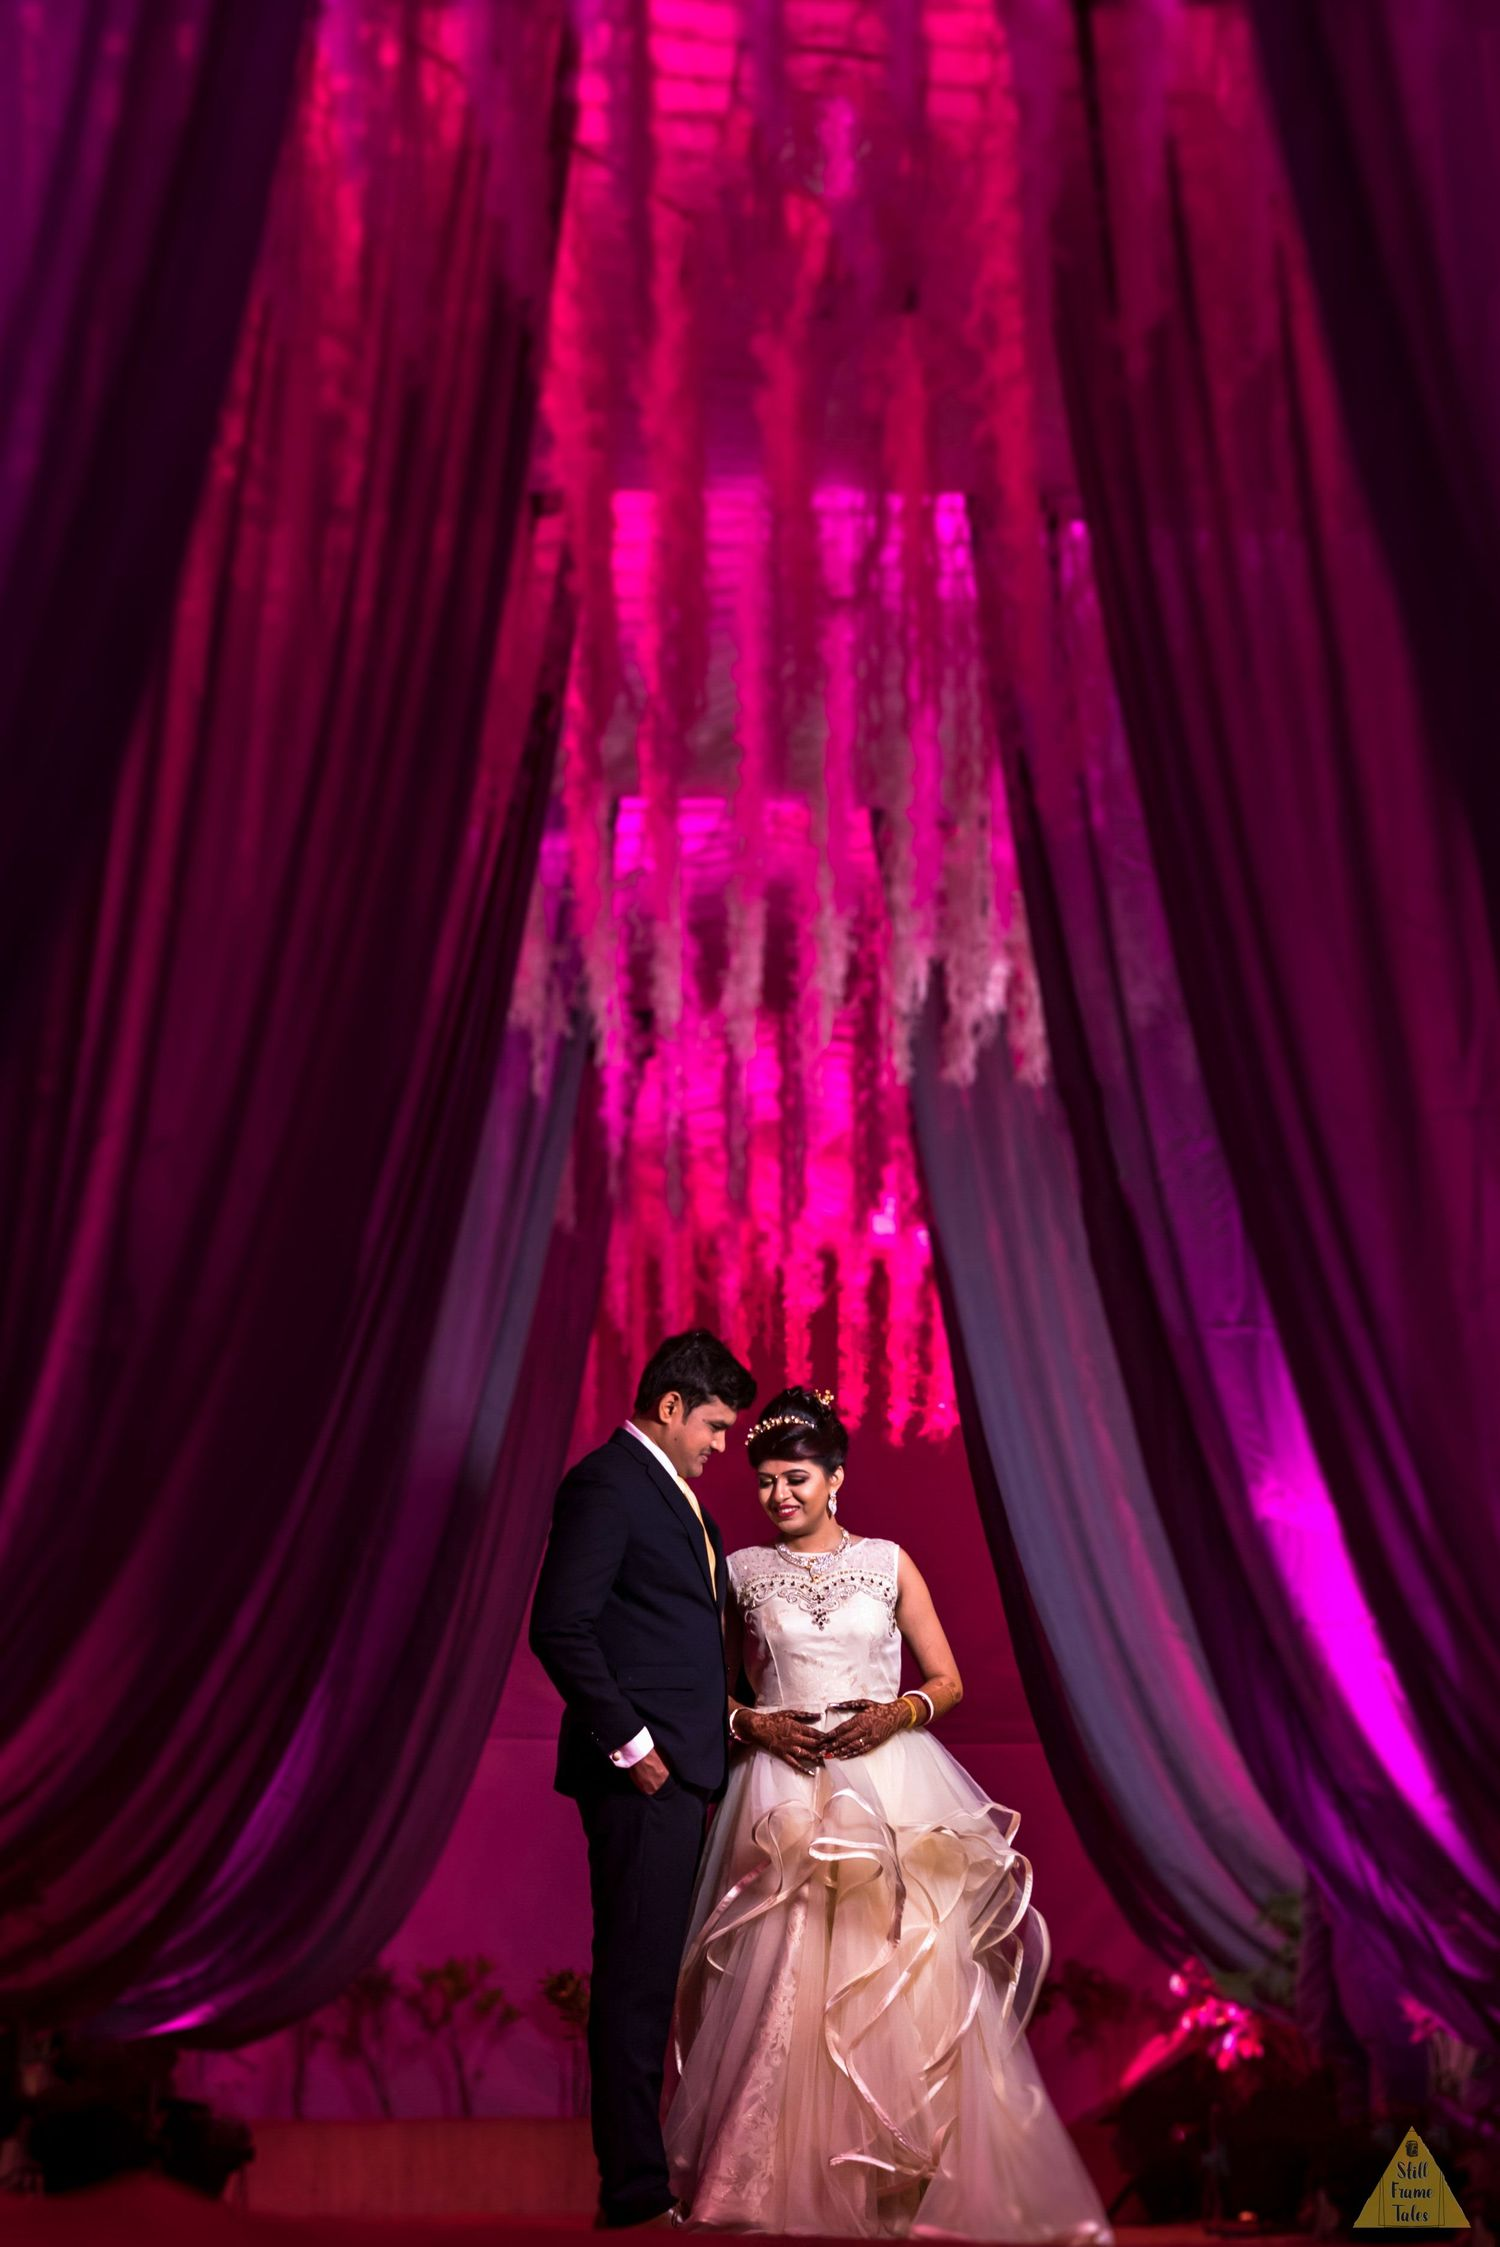 Elegant couple standing inside a pink tet background for their wedding day reception portrait